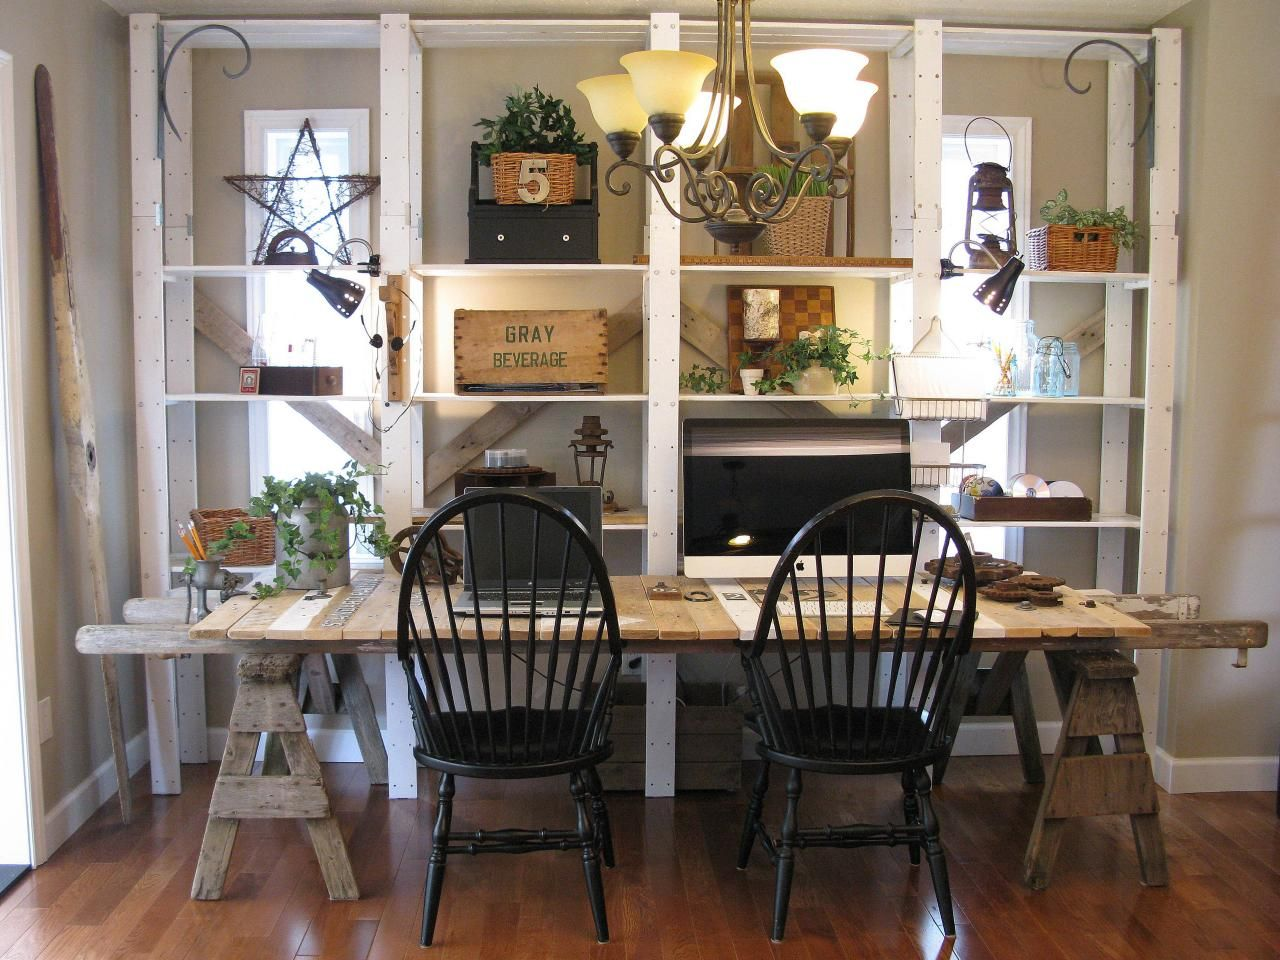 12 New Uses For Old Furniture Home Furnishings Furniture Repurposed Dining Table